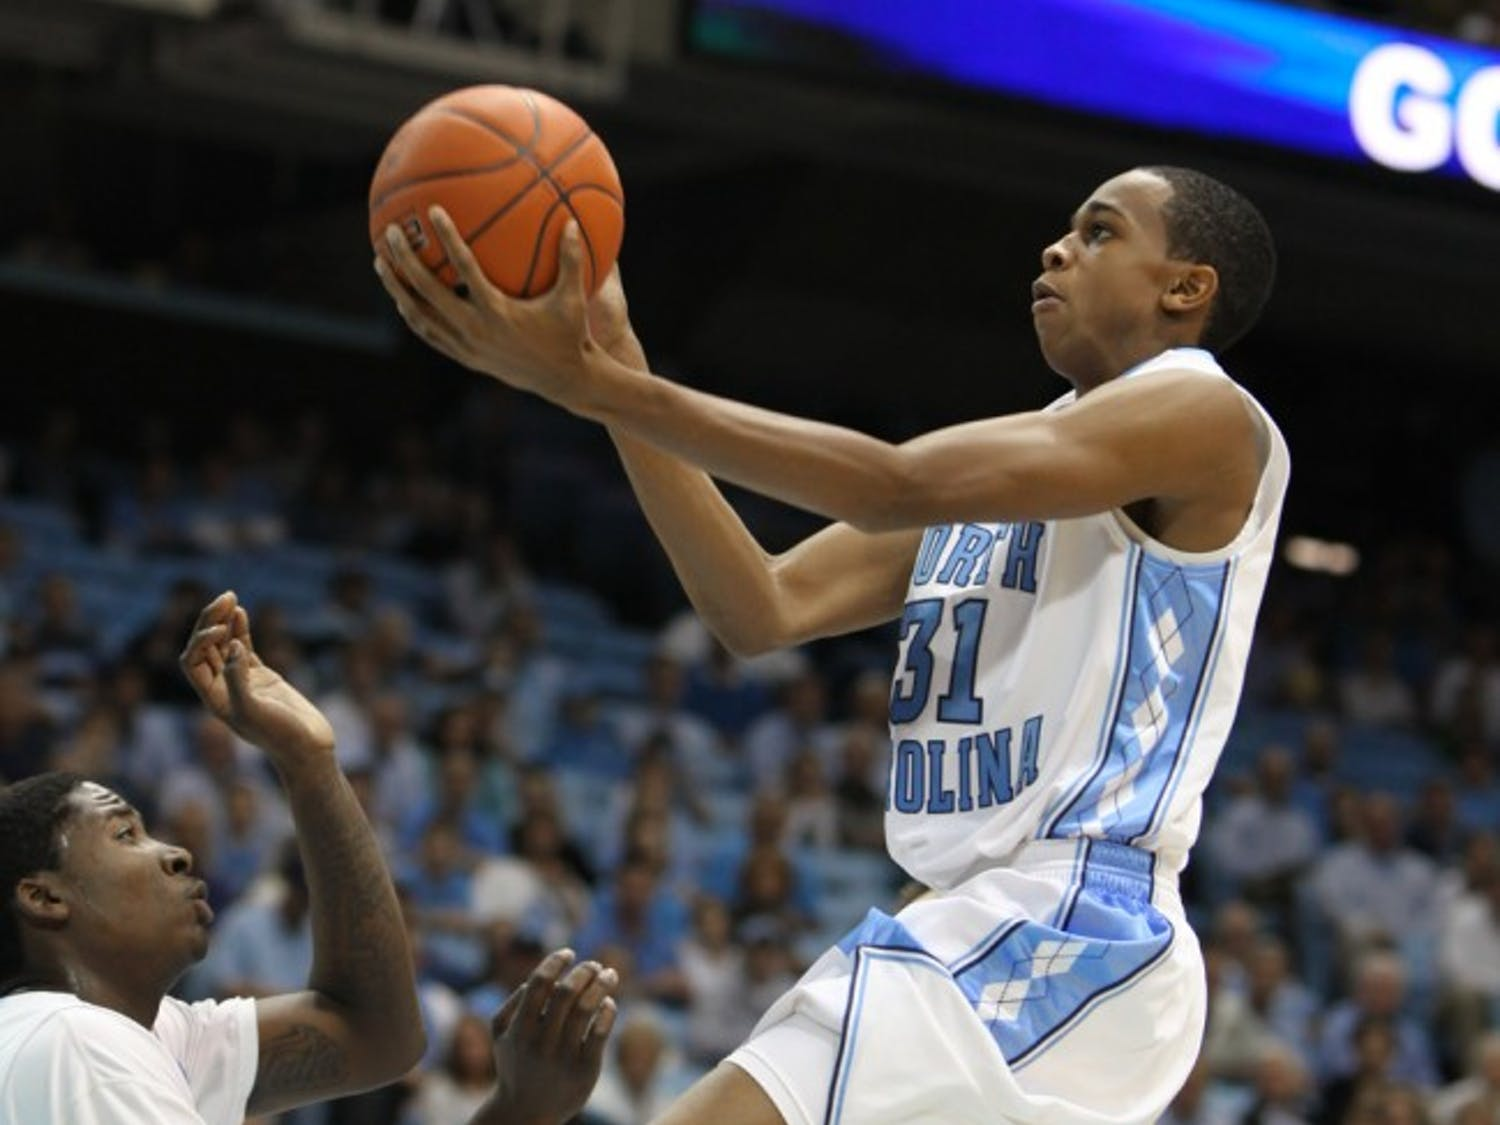 Freshman John Henson said UNC's success in the NIT has been a welcome break from the struggles the team has faced.DTH/Phong Dinh